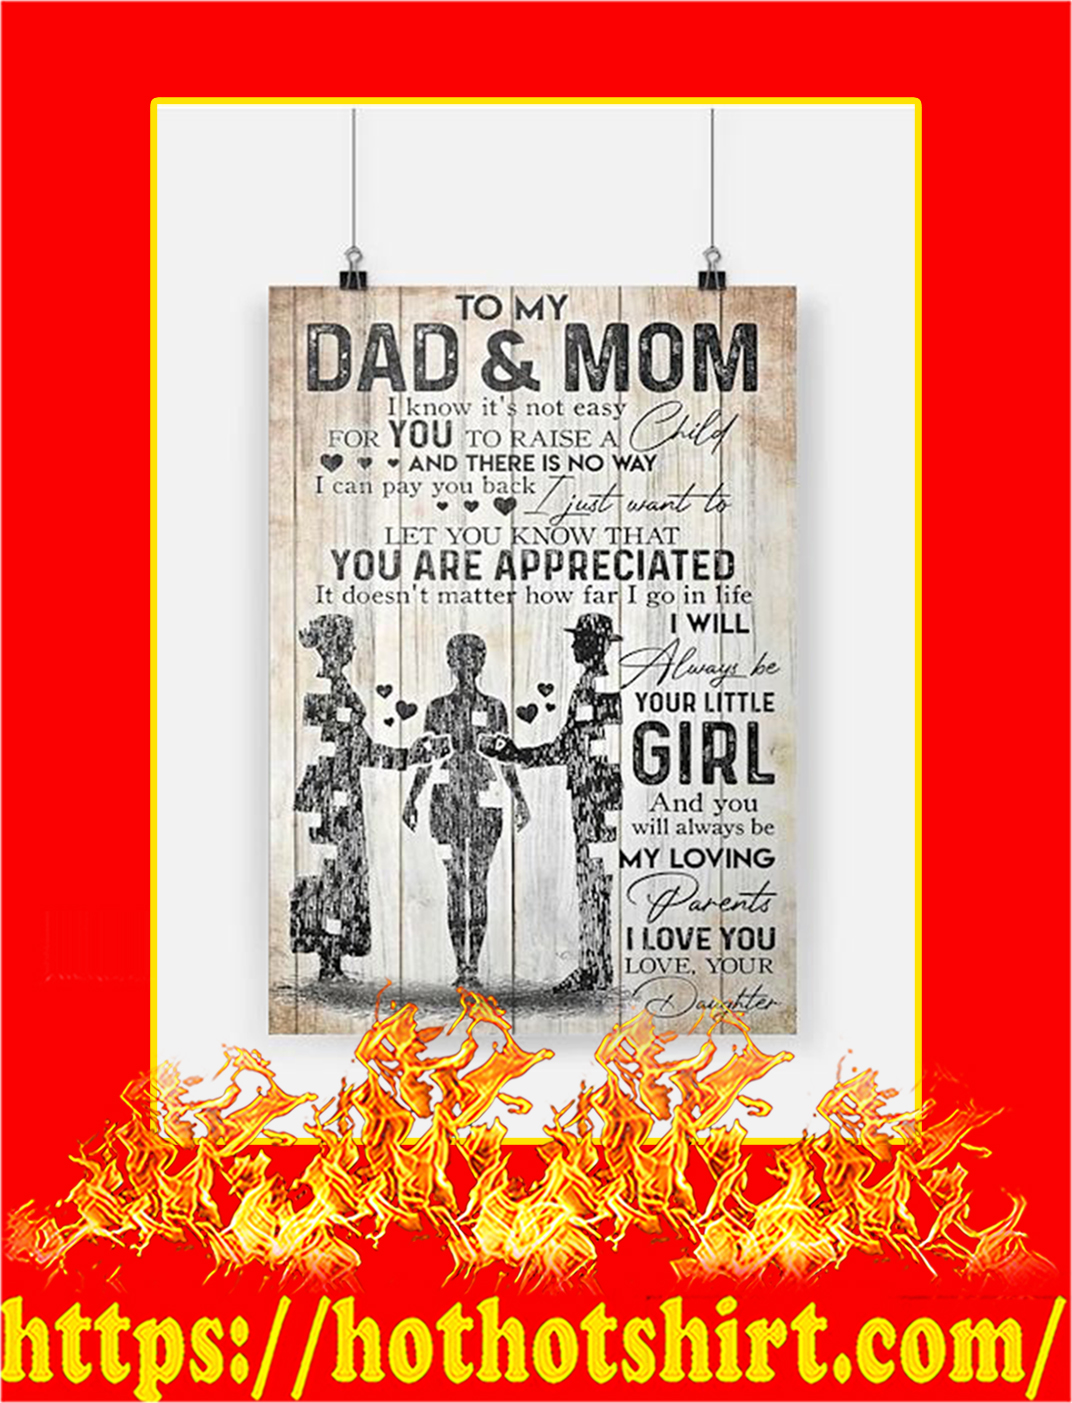 To My Dad And Mom Daughter Poster - A2